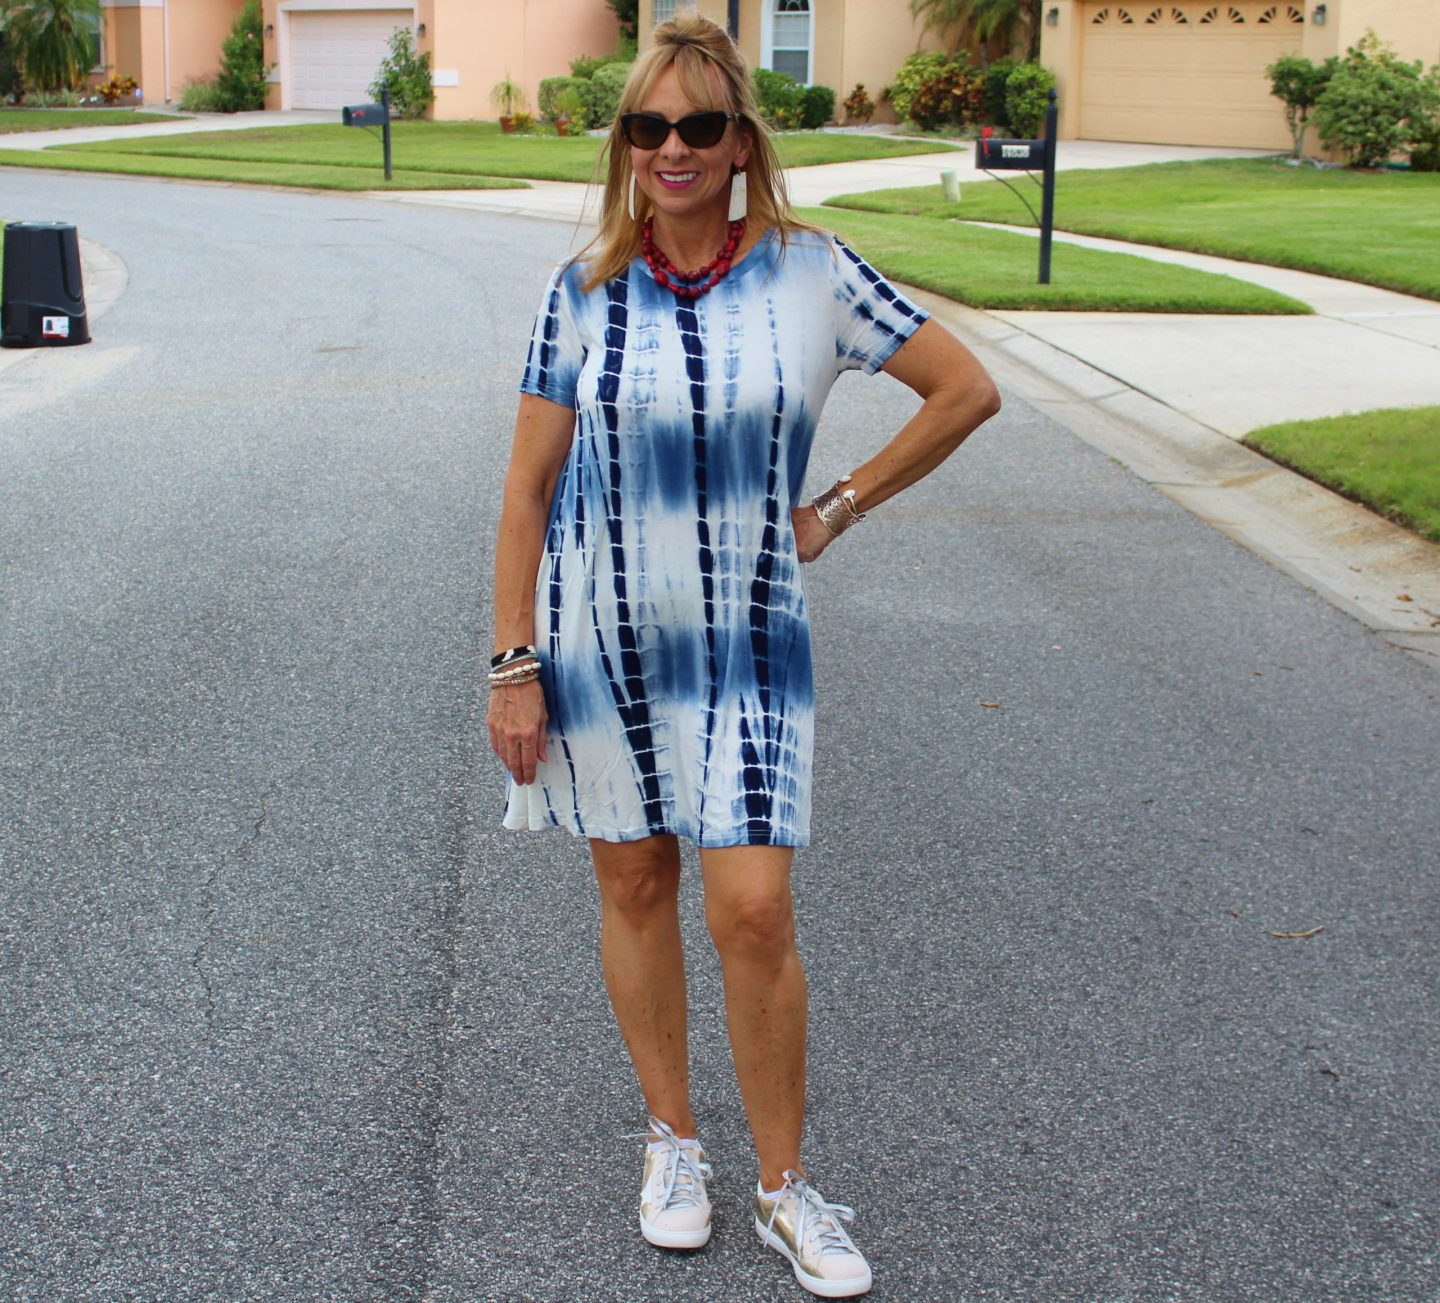 Tie Dye Dress + Sneakers